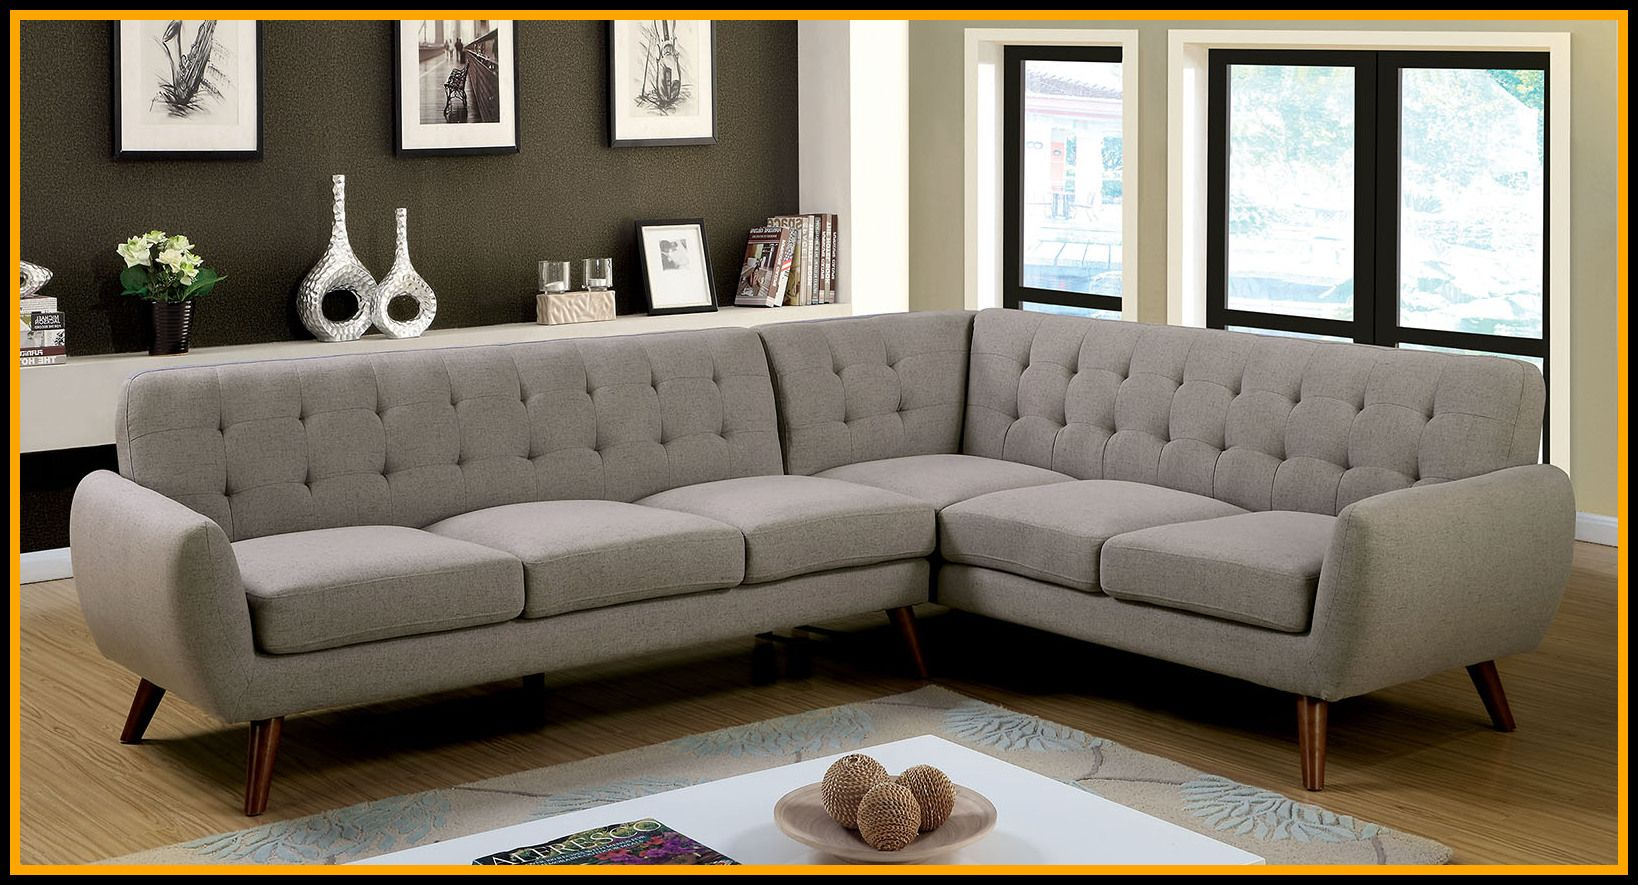 99 Reference Of Mid Century Modern Couch Grey In 2020 Modern Sofa Sectional Mid Century Modern Sectional Sofa Mid Century Modern Sectional